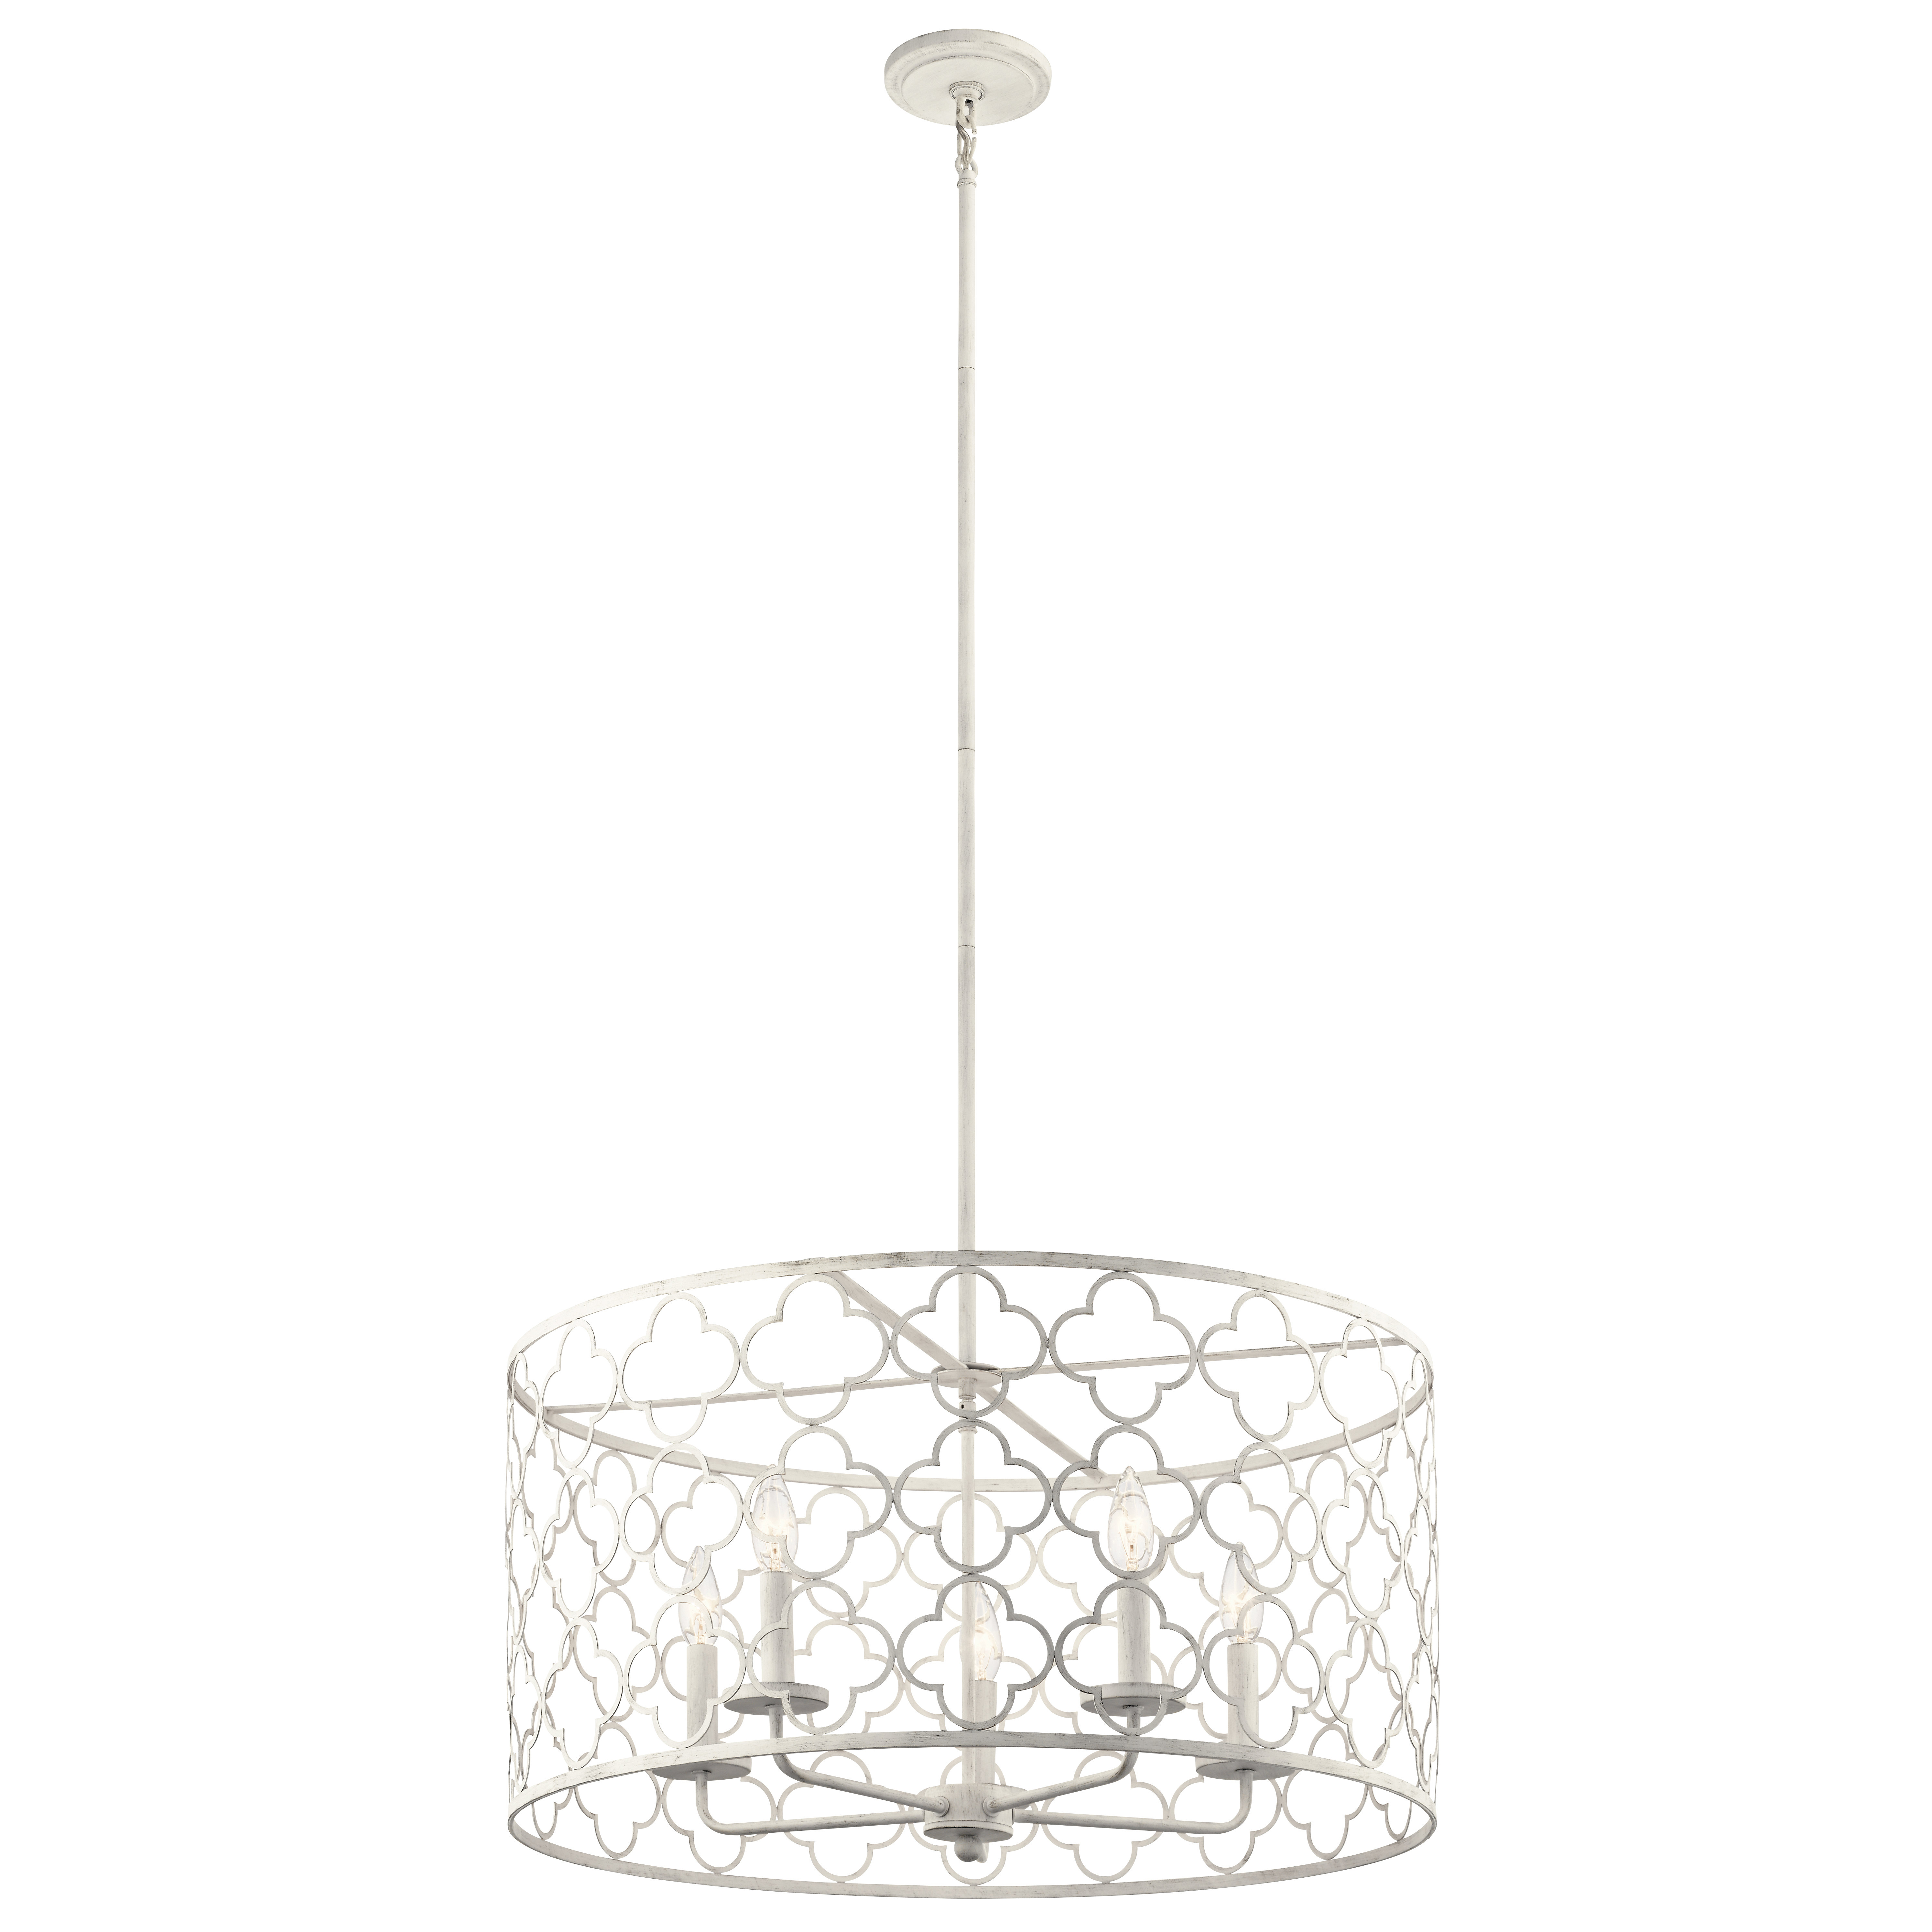 Widely Used Diller 5 Light Drum Chandelier Intended For Gisselle 4 Light Drum Chandeliers (View 25 of 25)